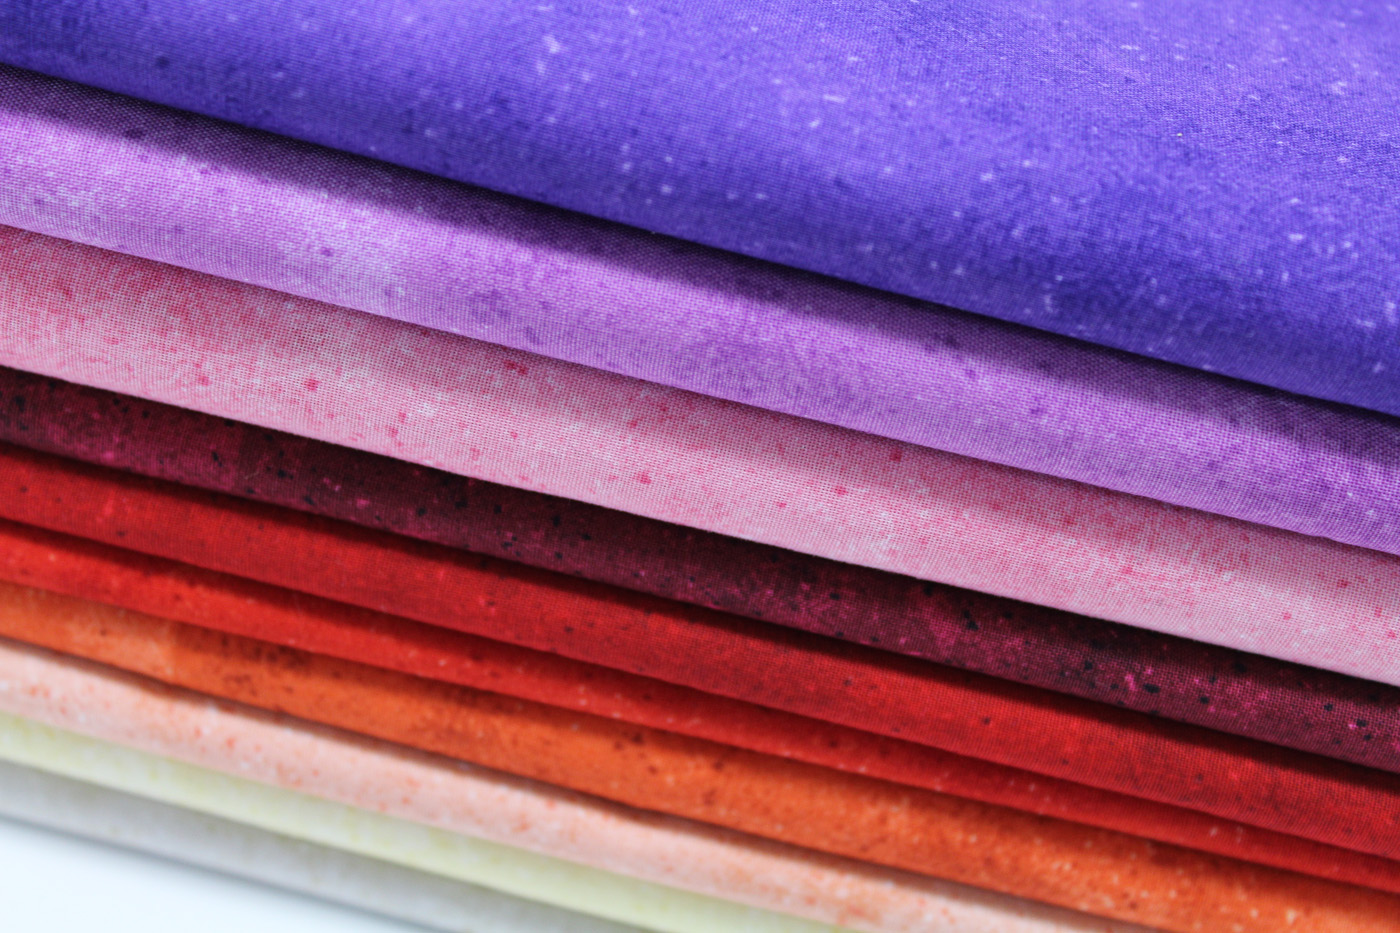 Quilting cotton design Shadowplay photo colours cream, oranges, red, pinks and purples